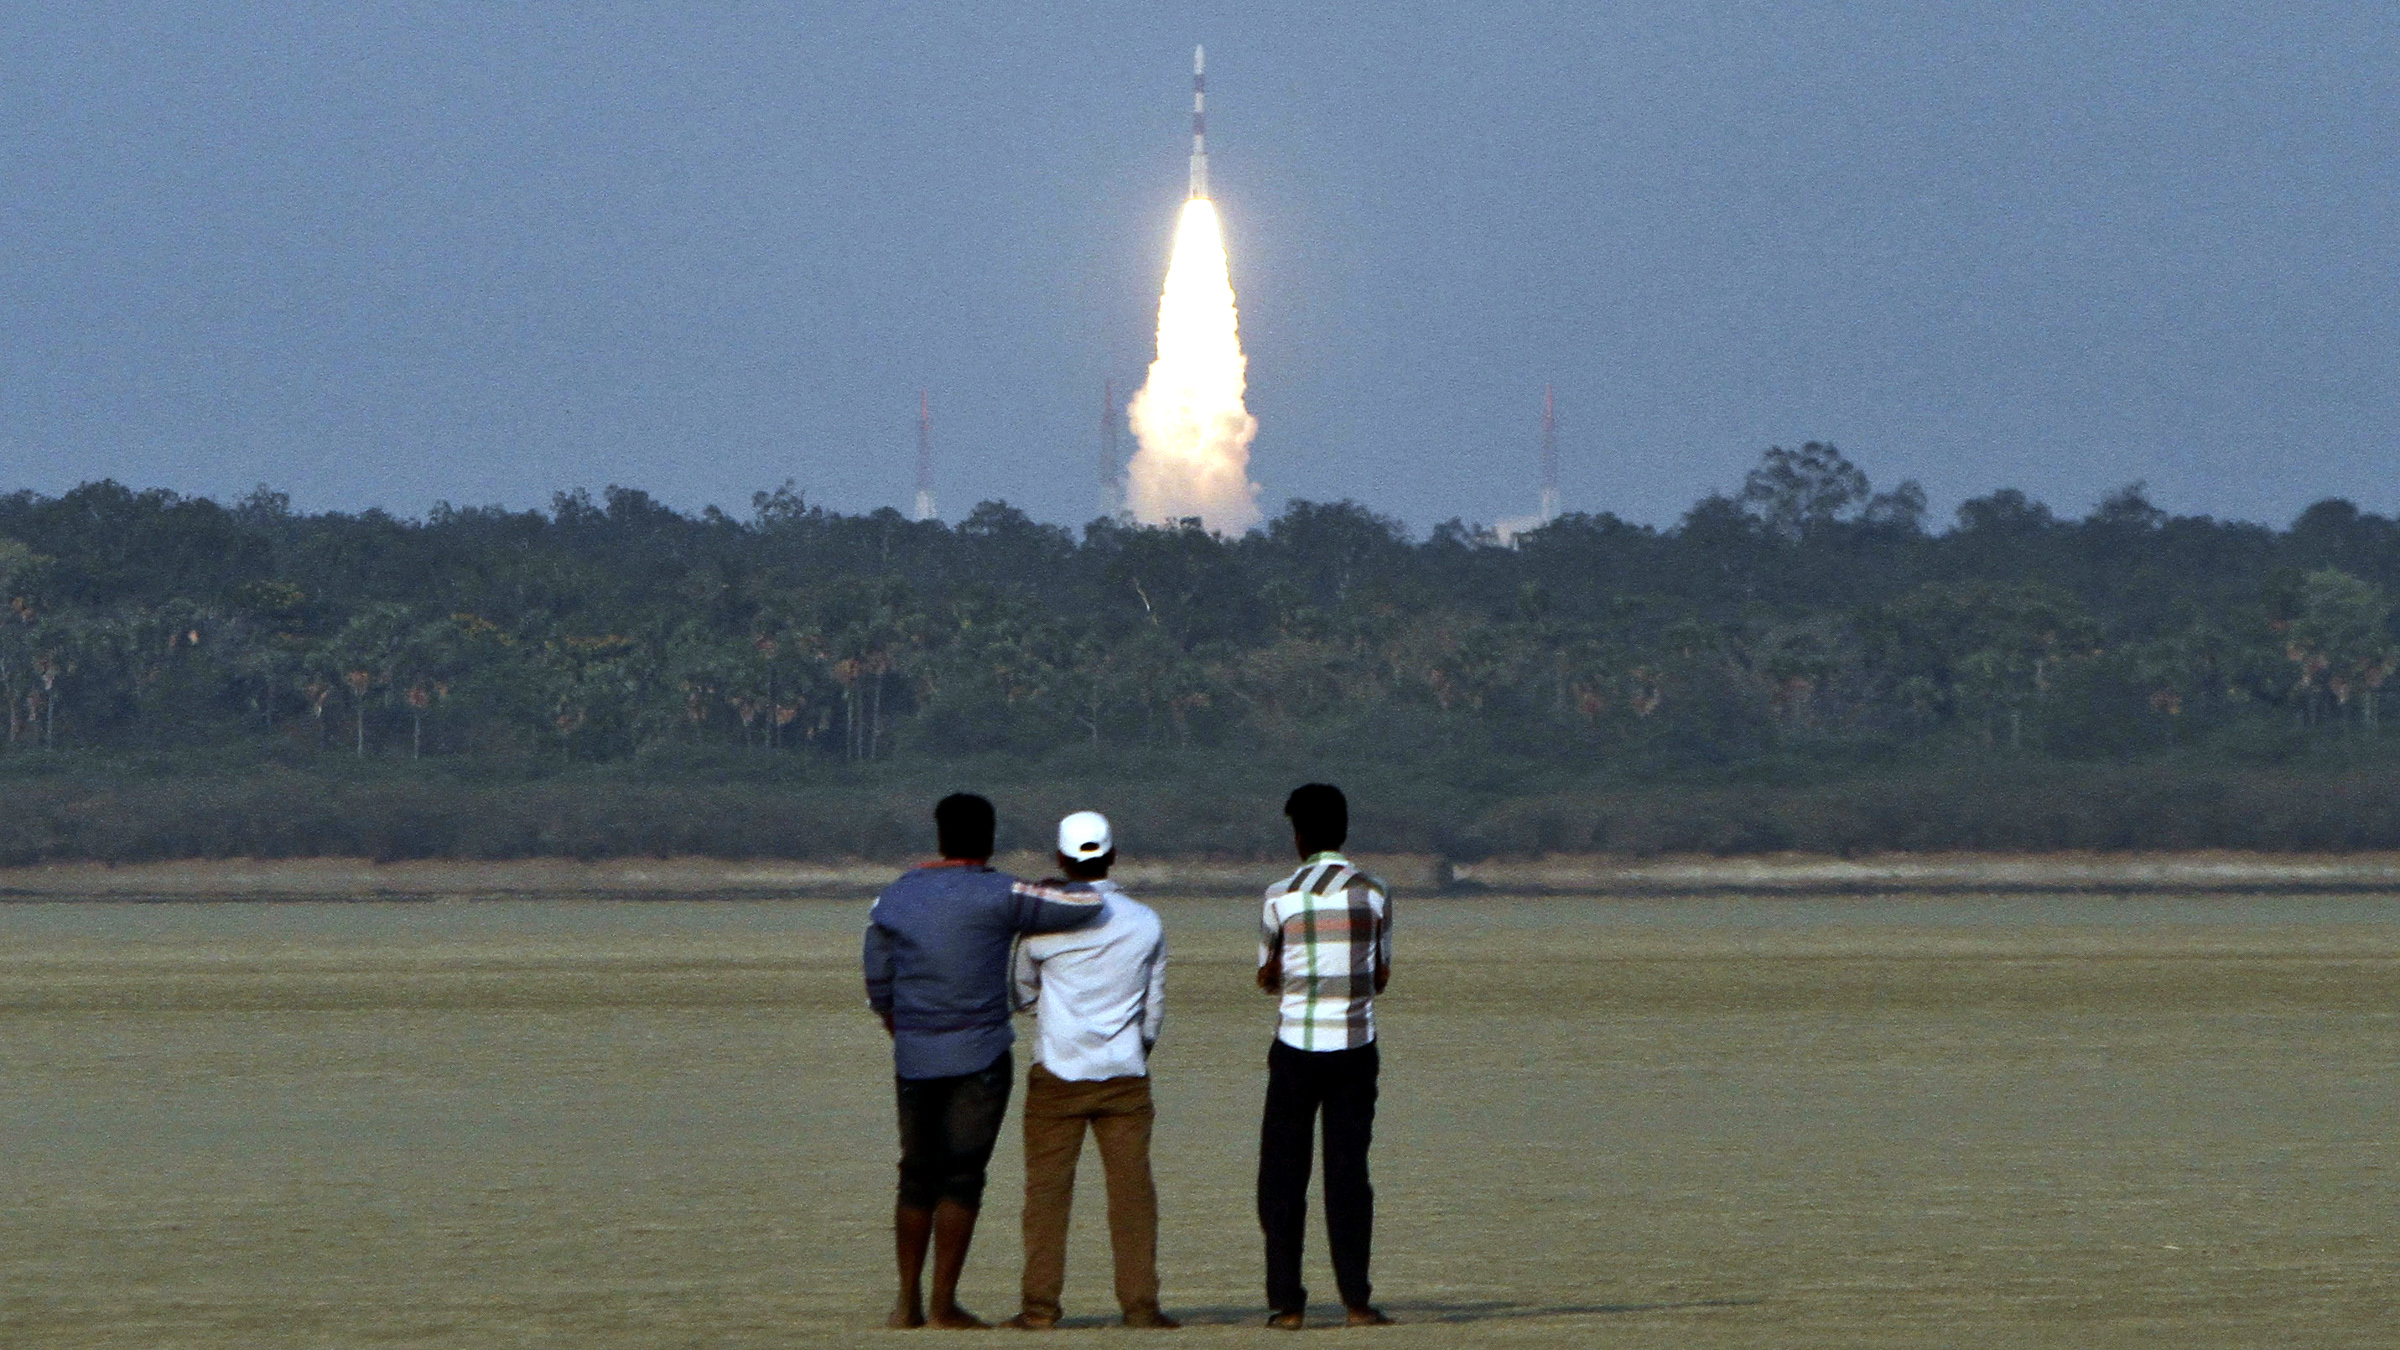 India's Polar Satellite Launch Vehicle (PSLV-C24), carrying the second navigation satellite of the Indian Regional Navigation Satellite System IRNSS-1B, lifts off from the Satish Dhawan Space Centre in Sriharikota, about 100 km (62 miles) north of the southern Indian city of Chennai April 4, 2014.